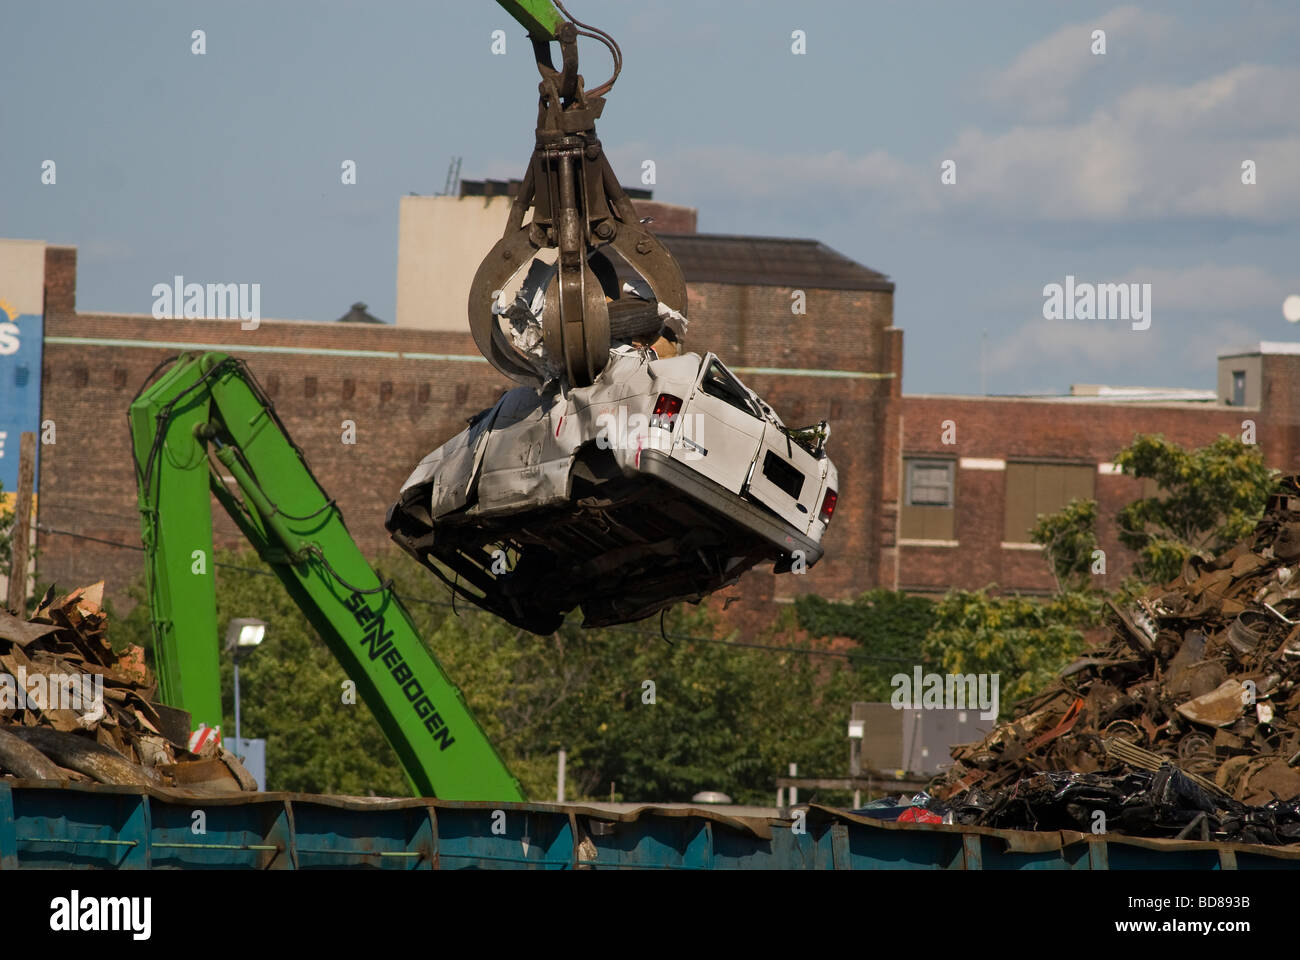 Automobiles at a scrap metal recycler on Newtown Creek separating Brooklyn and Queens counties in New York - Stock Image